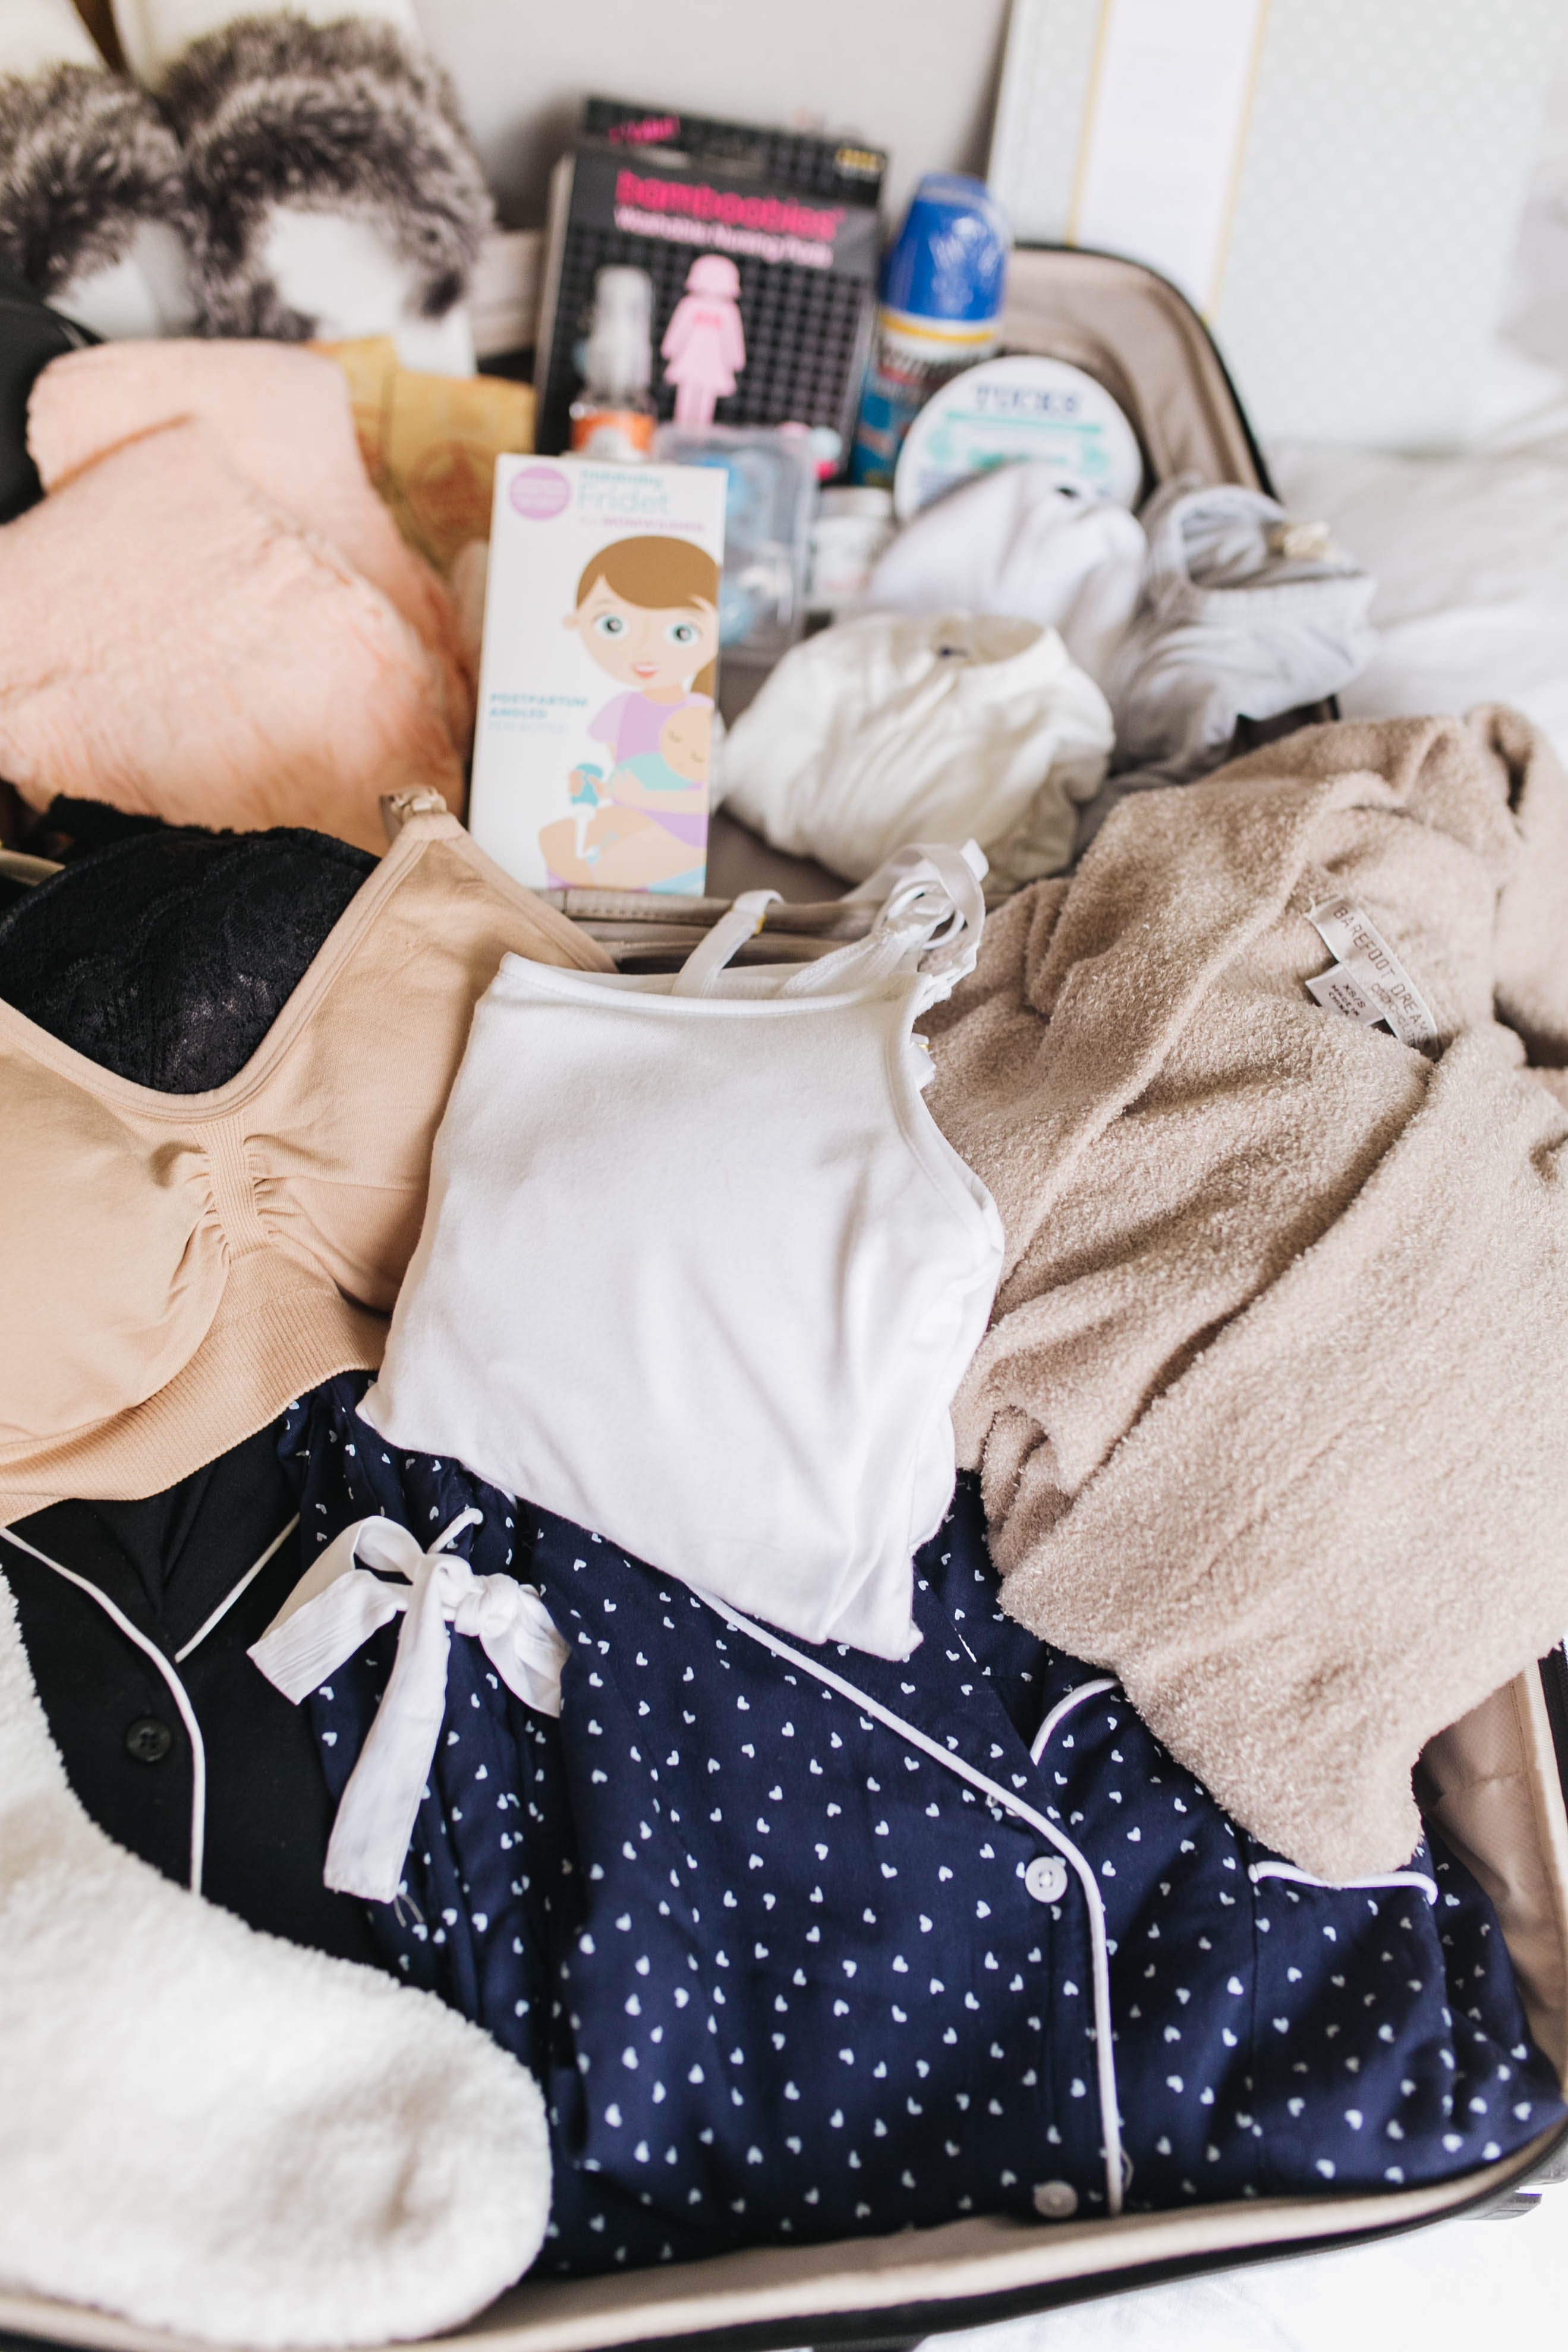 what to pack in hospital bag checklist daryl-ann denner something beautiful the blog